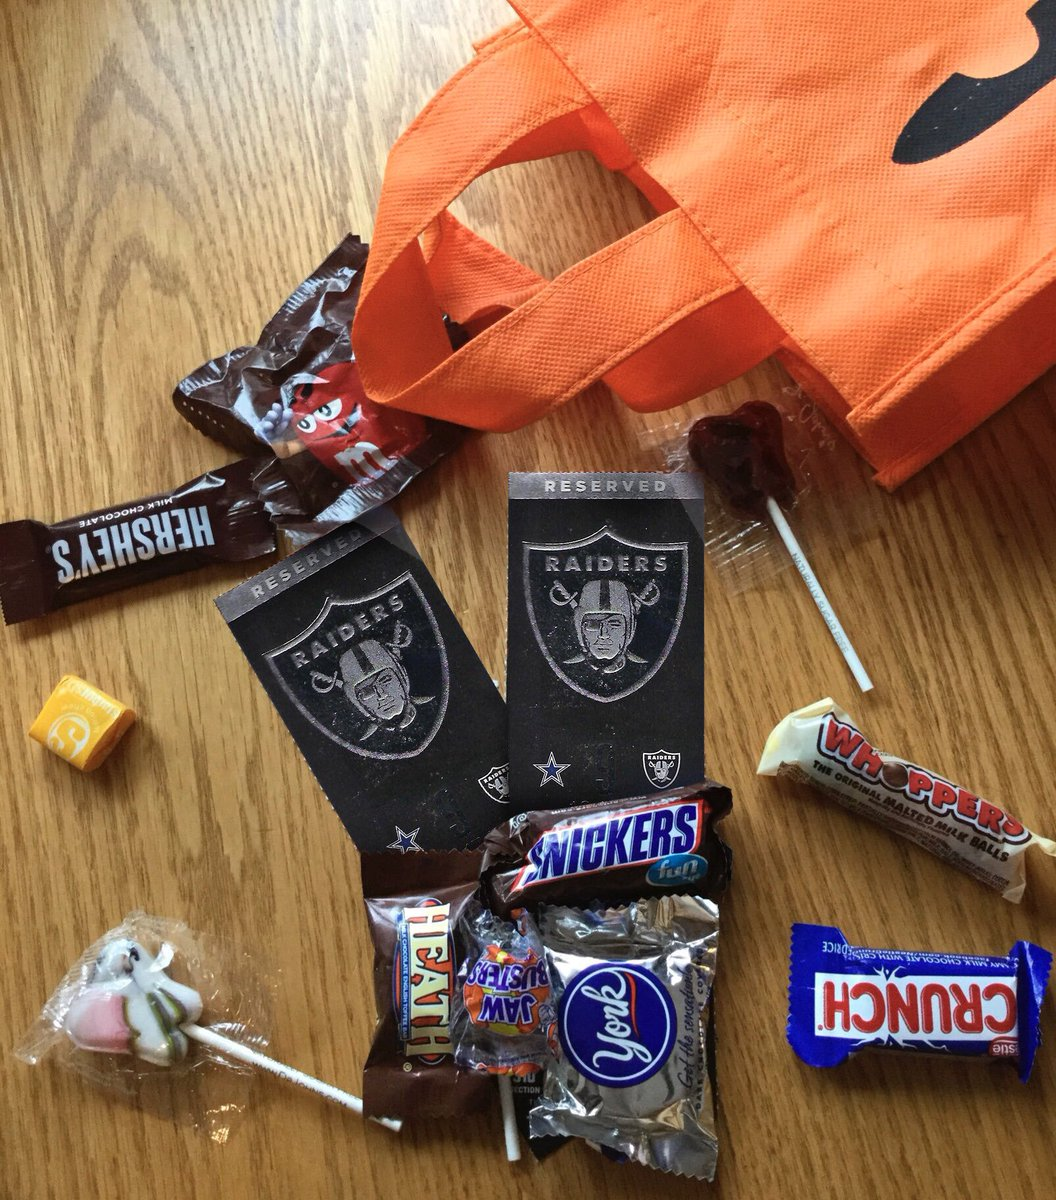 parents - please check your children's candy this halloween! i just